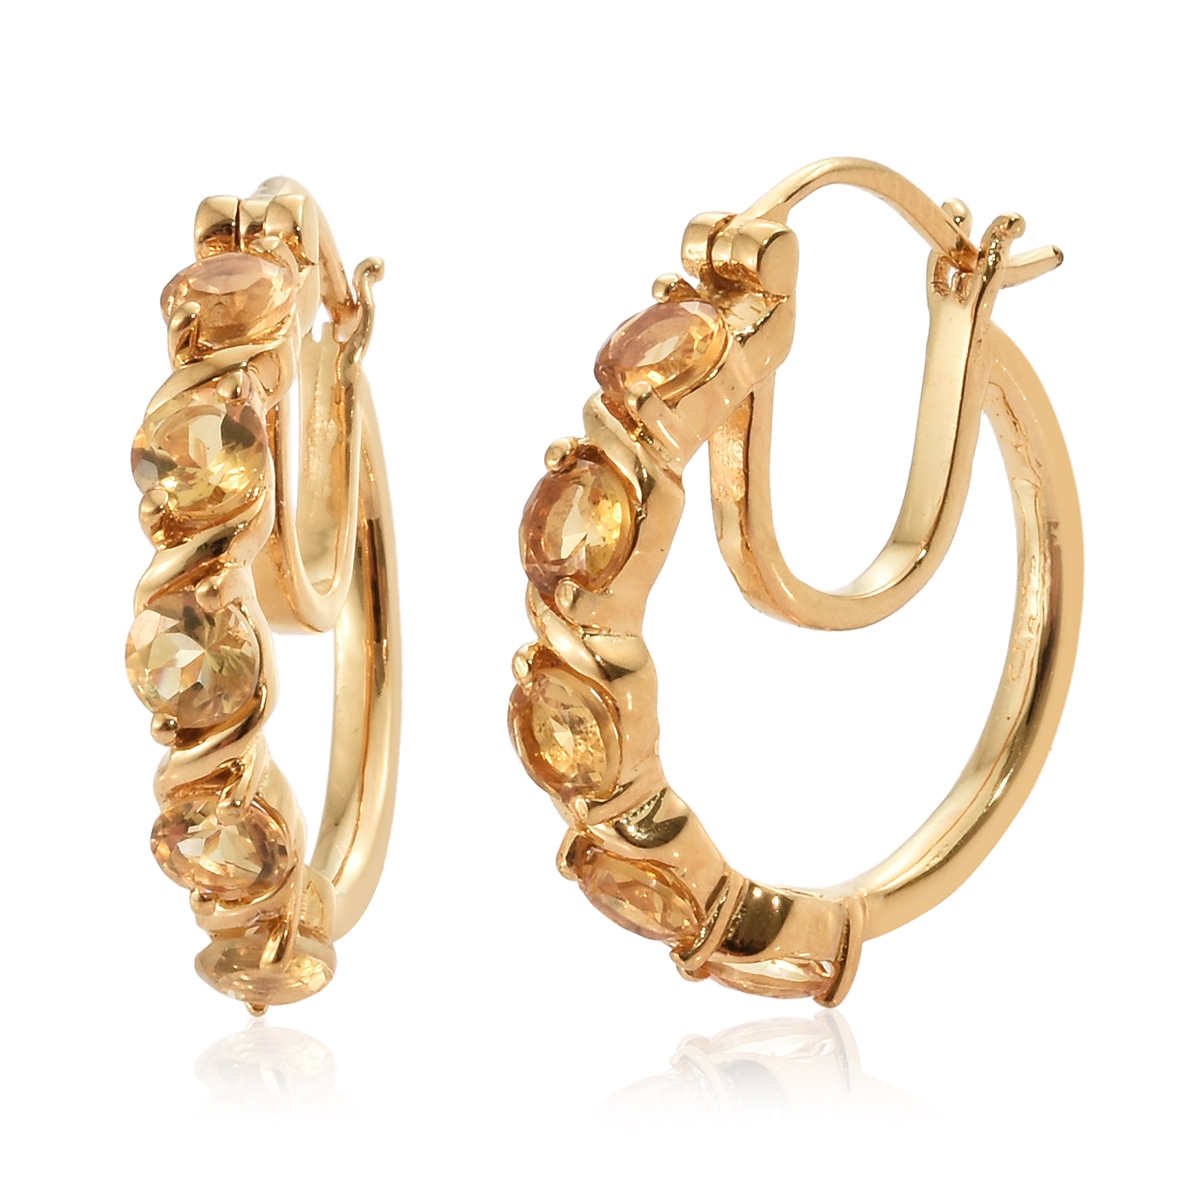 27ccfffff KARIS Collection - Brazilian Citrine ION Plated 18K YG Brass 5 Stone Hoop  Earrings TGW 2.40 cts. | Shop LC